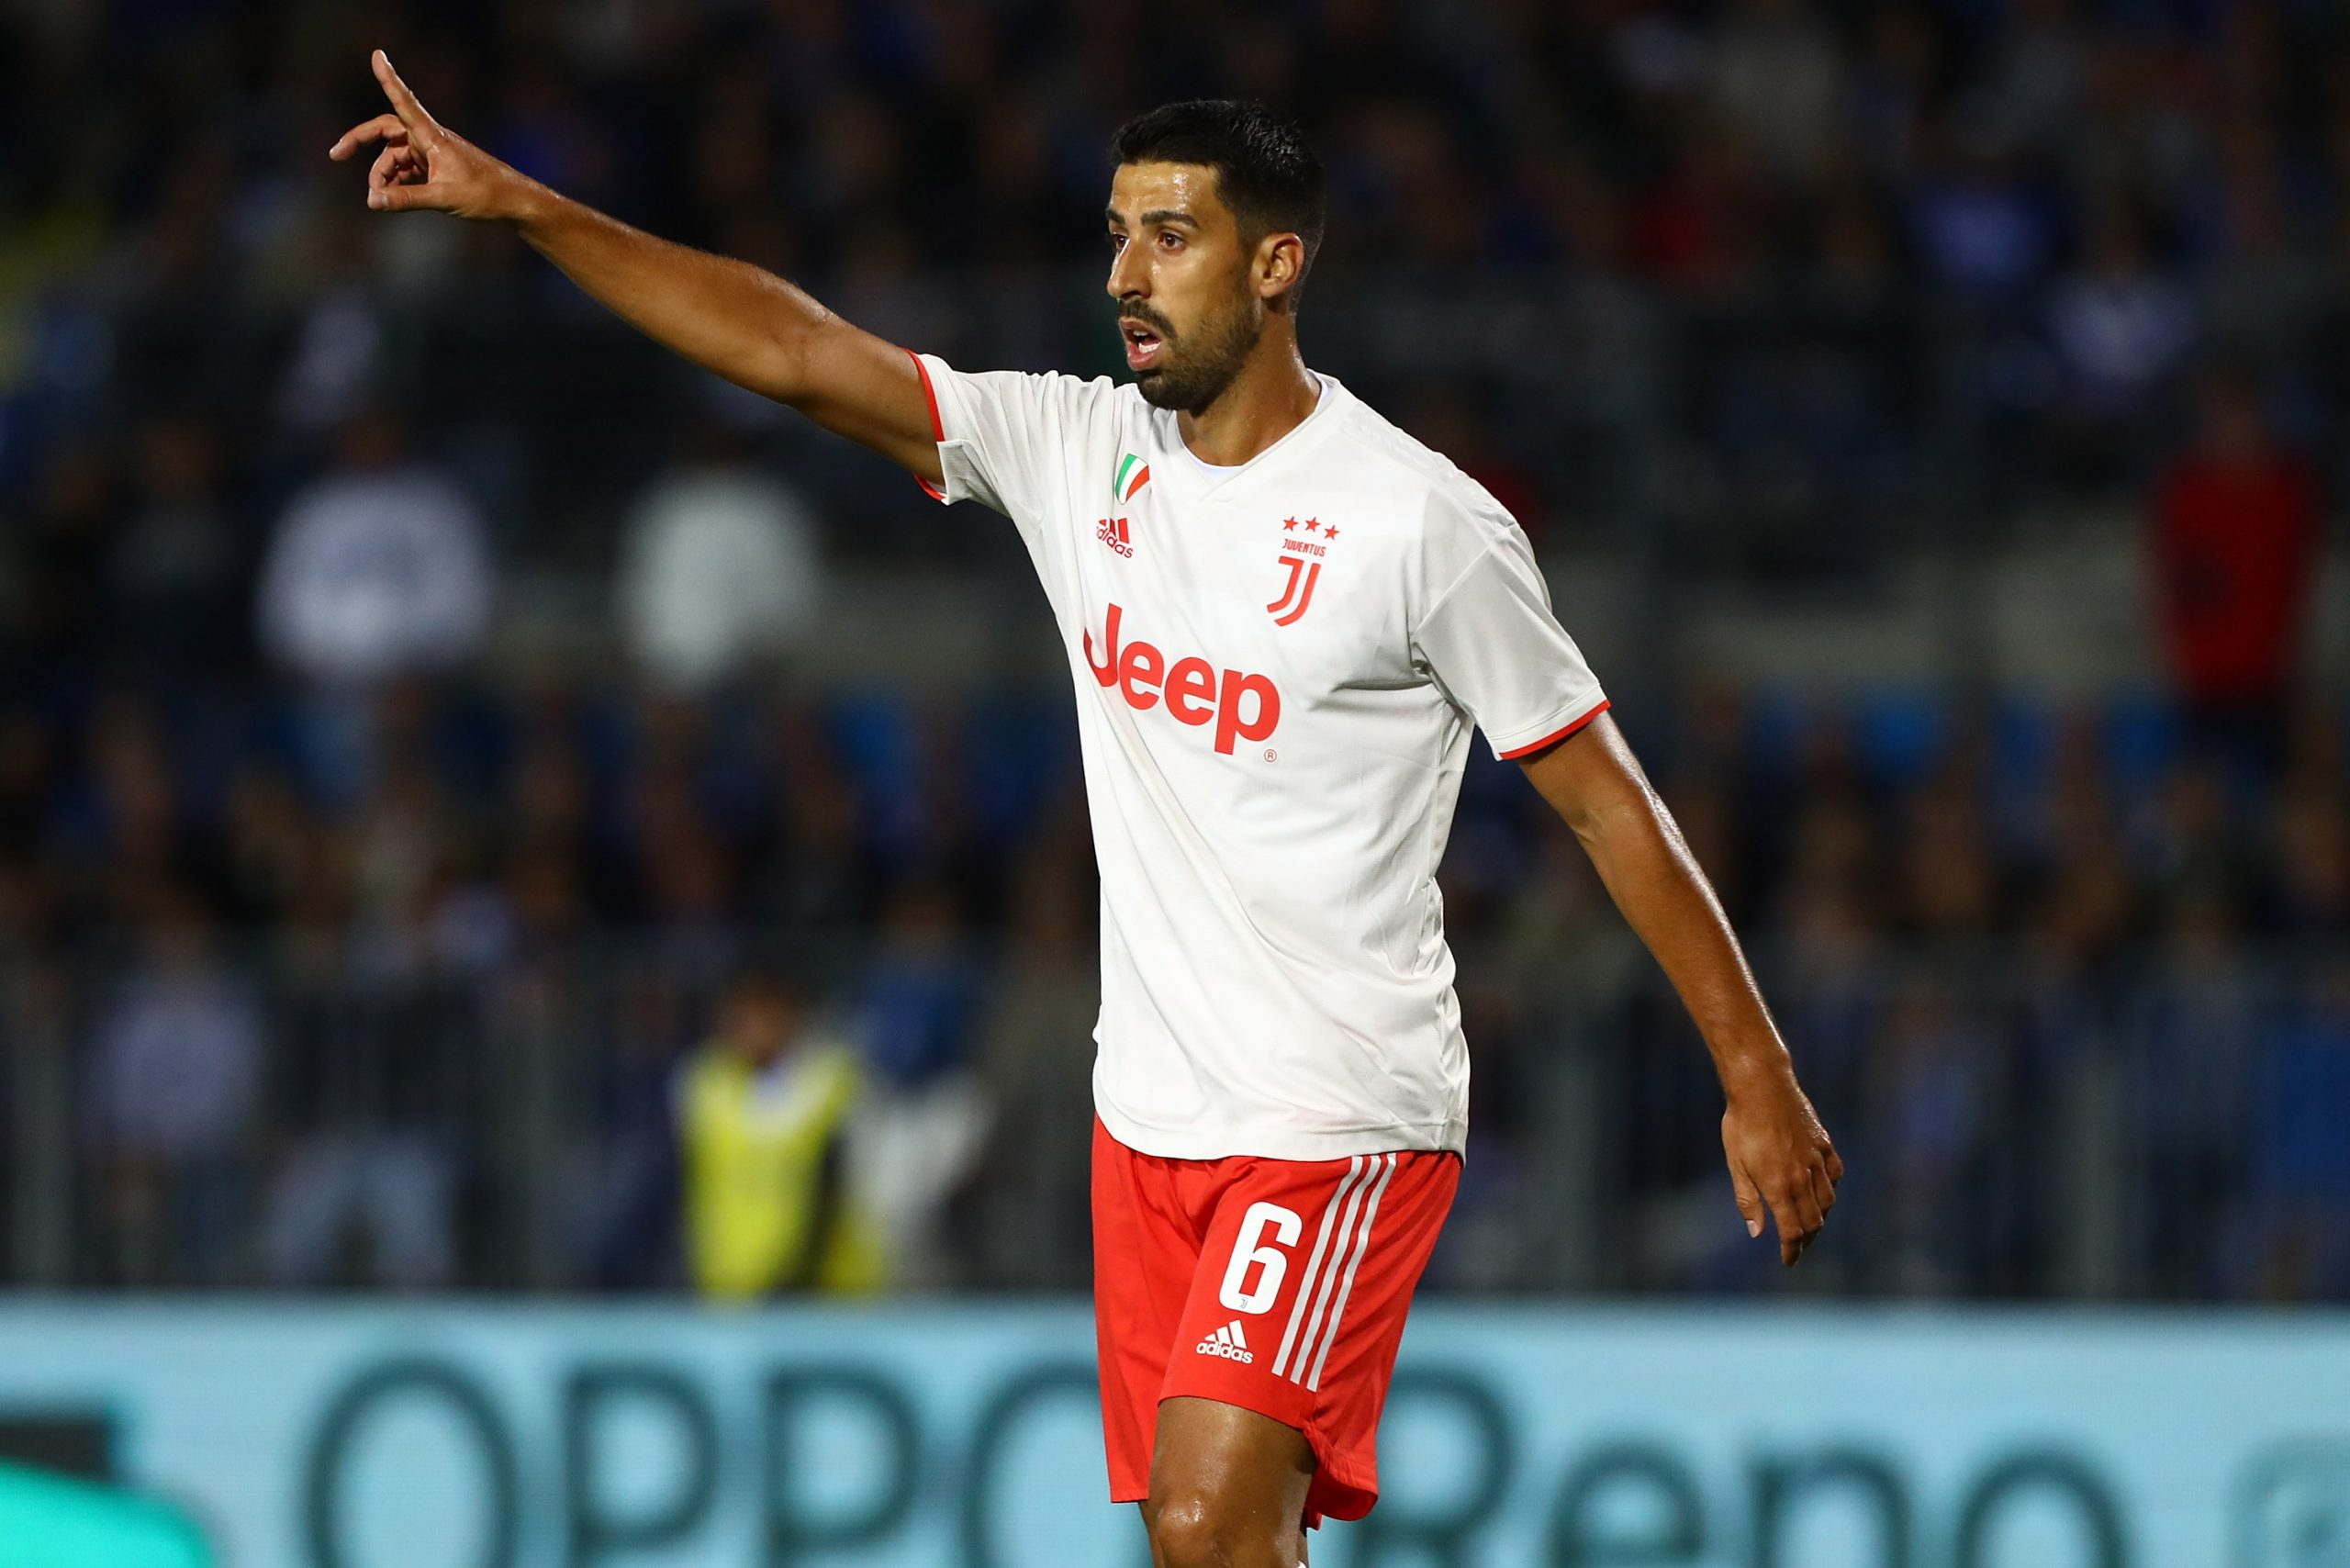 Sami Khedira in action for Juventus in the Serie A. (Getty Images)